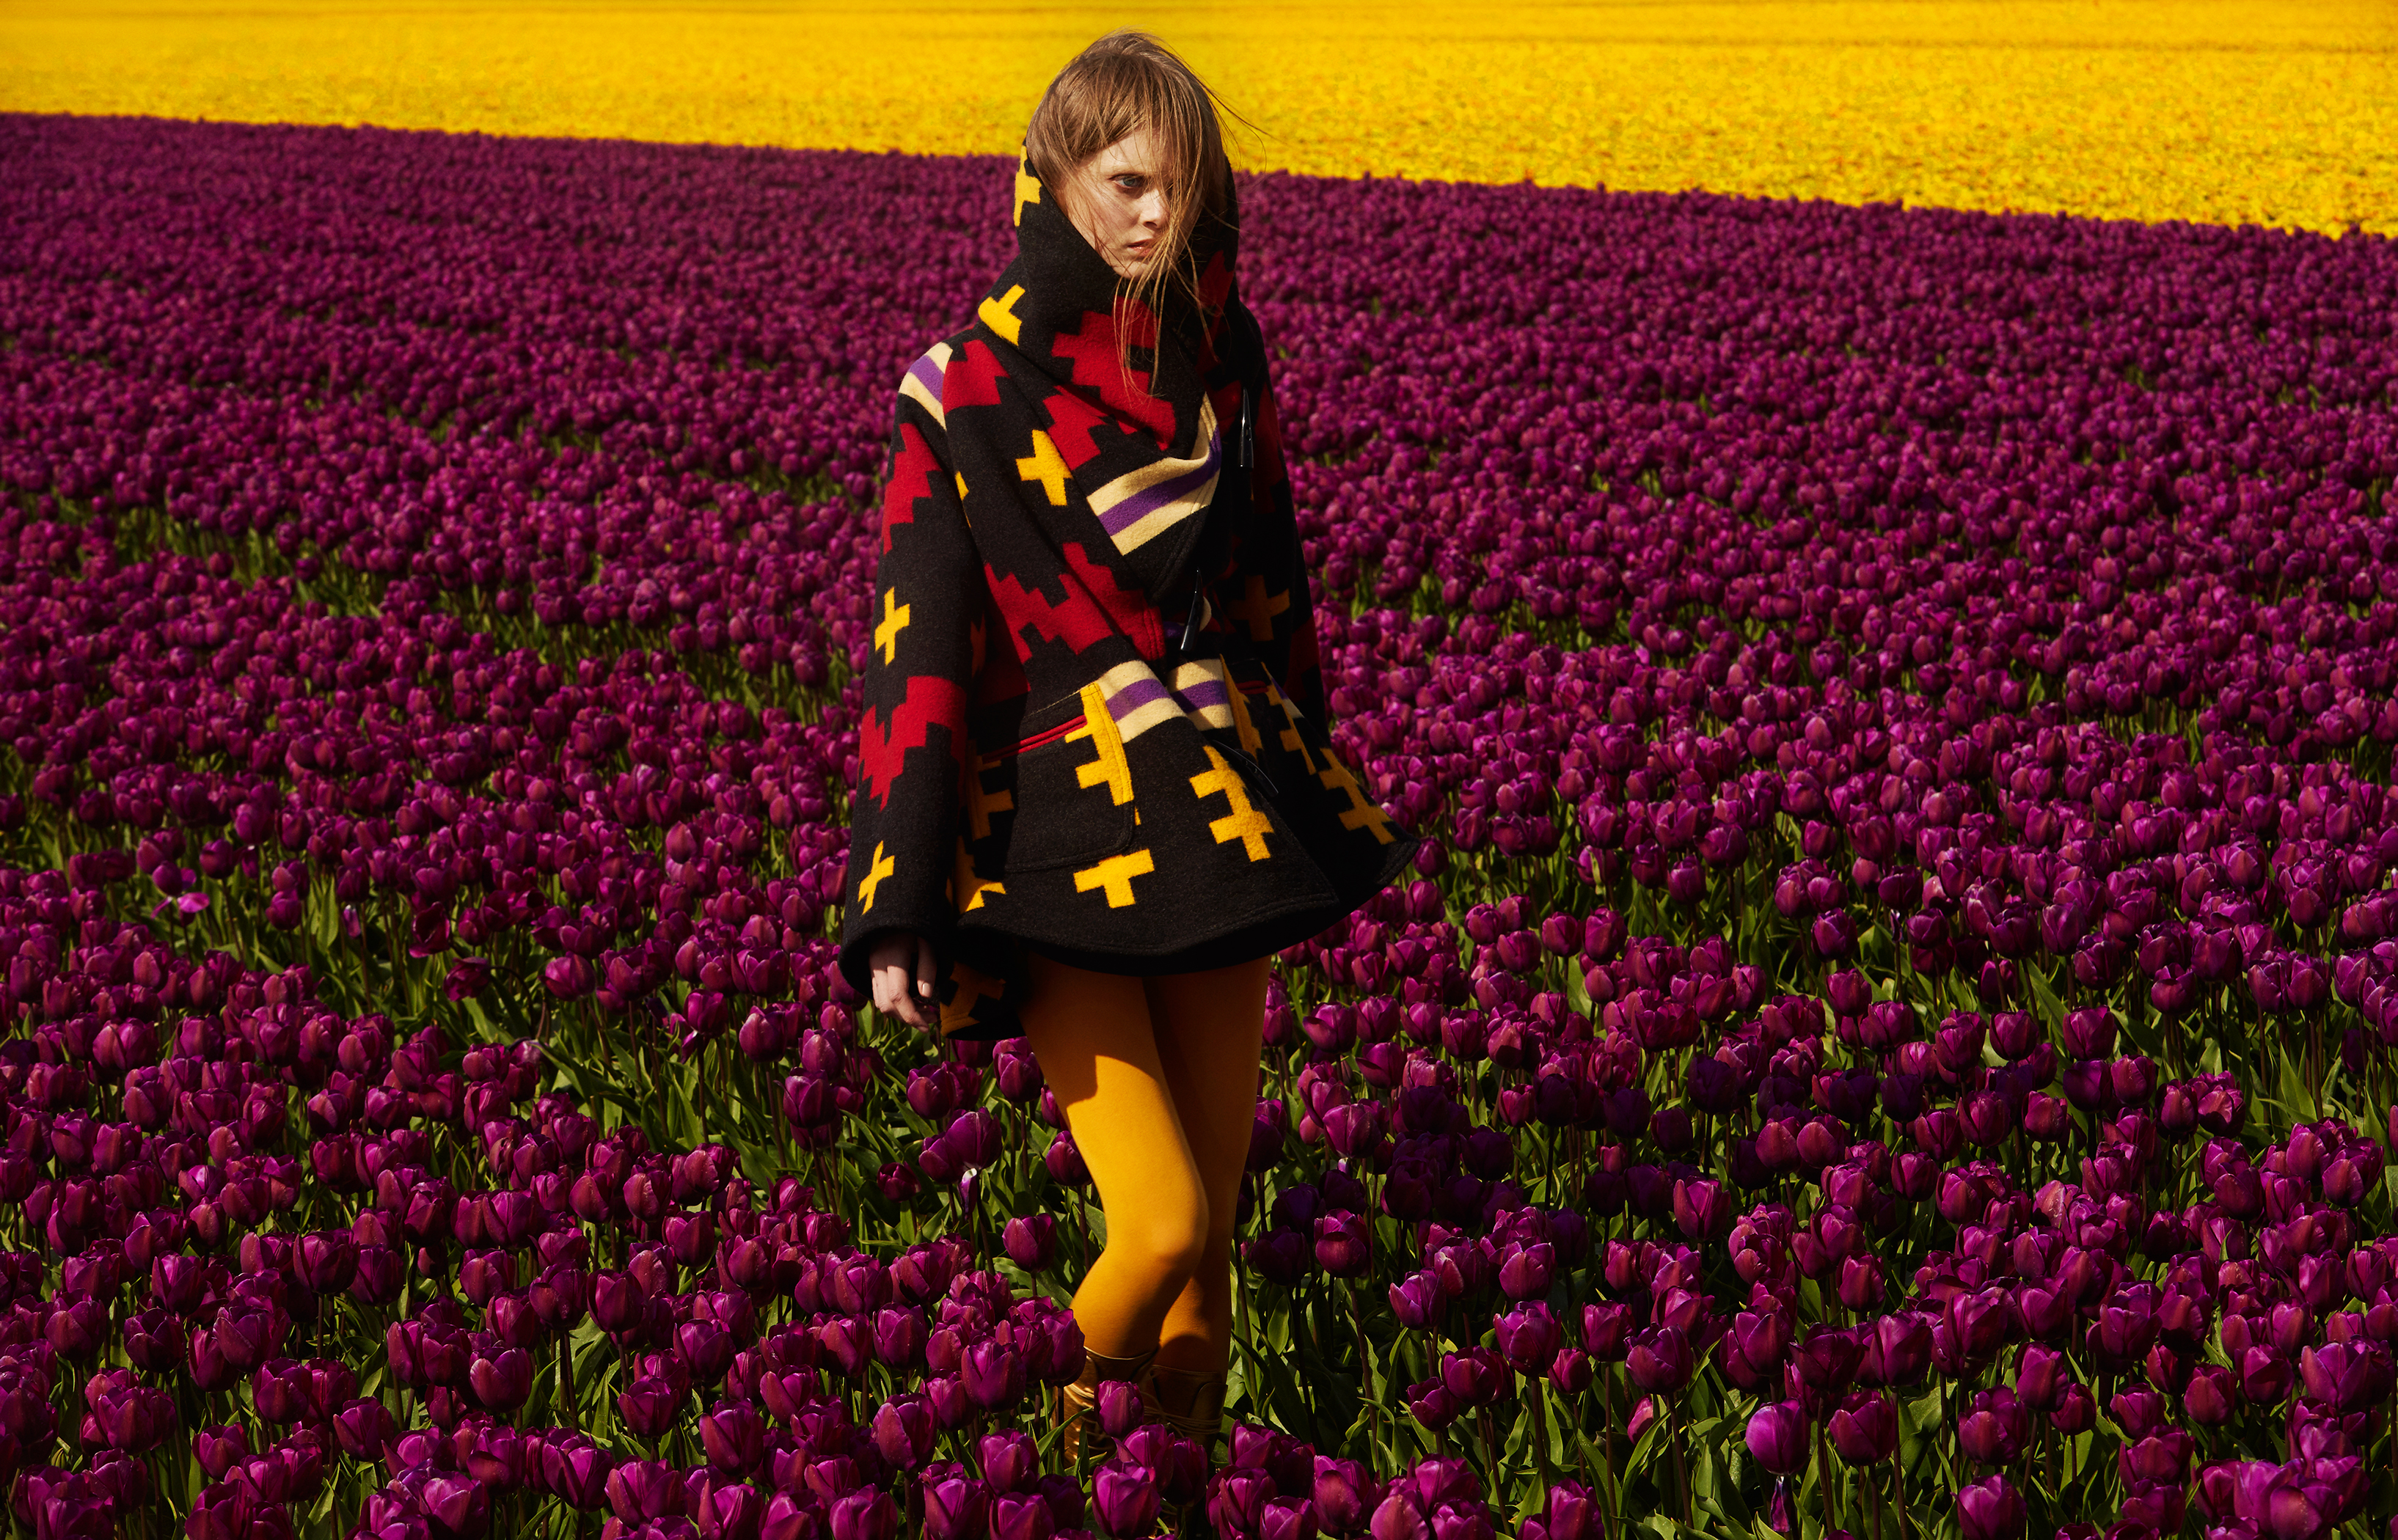 A model wearing a cape stand in a field of purple tulips.